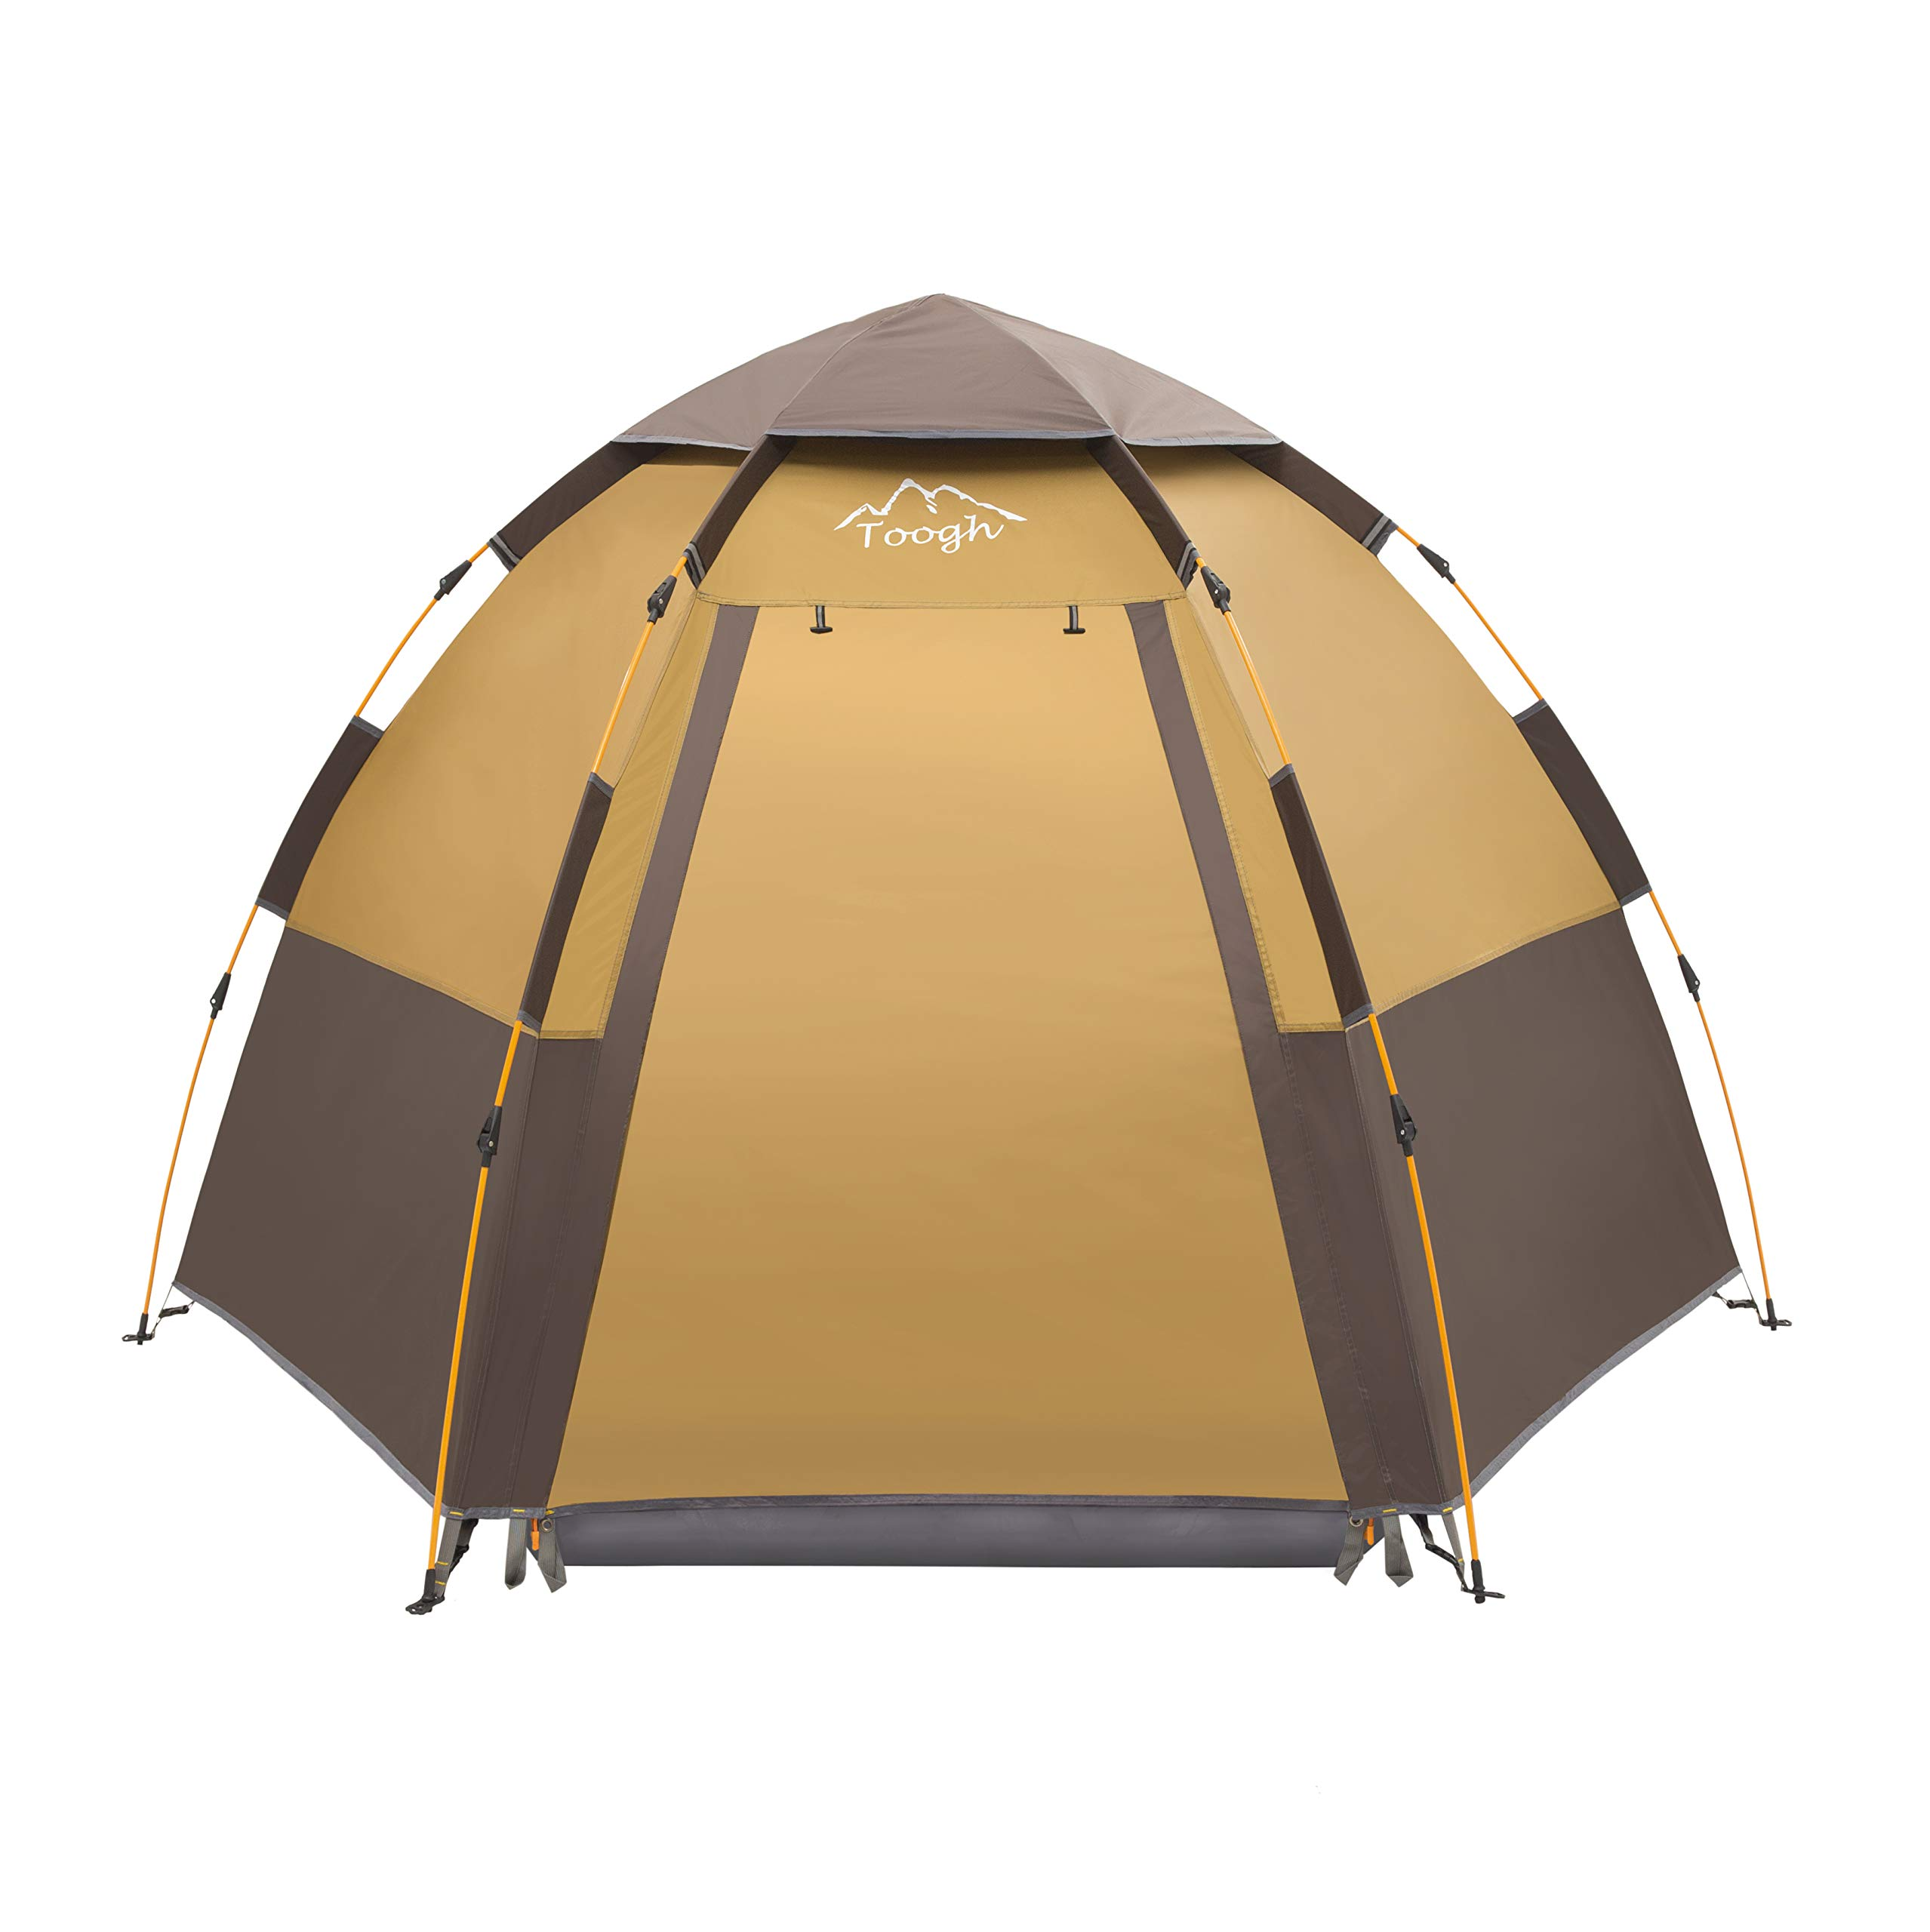 Toogh 3-4 Person C&ing Tent Backpacking ...  sc 1 st  BSA Soar & Toogh 3-4 Person Camping Tent Backpacking Tents Hexagon Waterproof ...